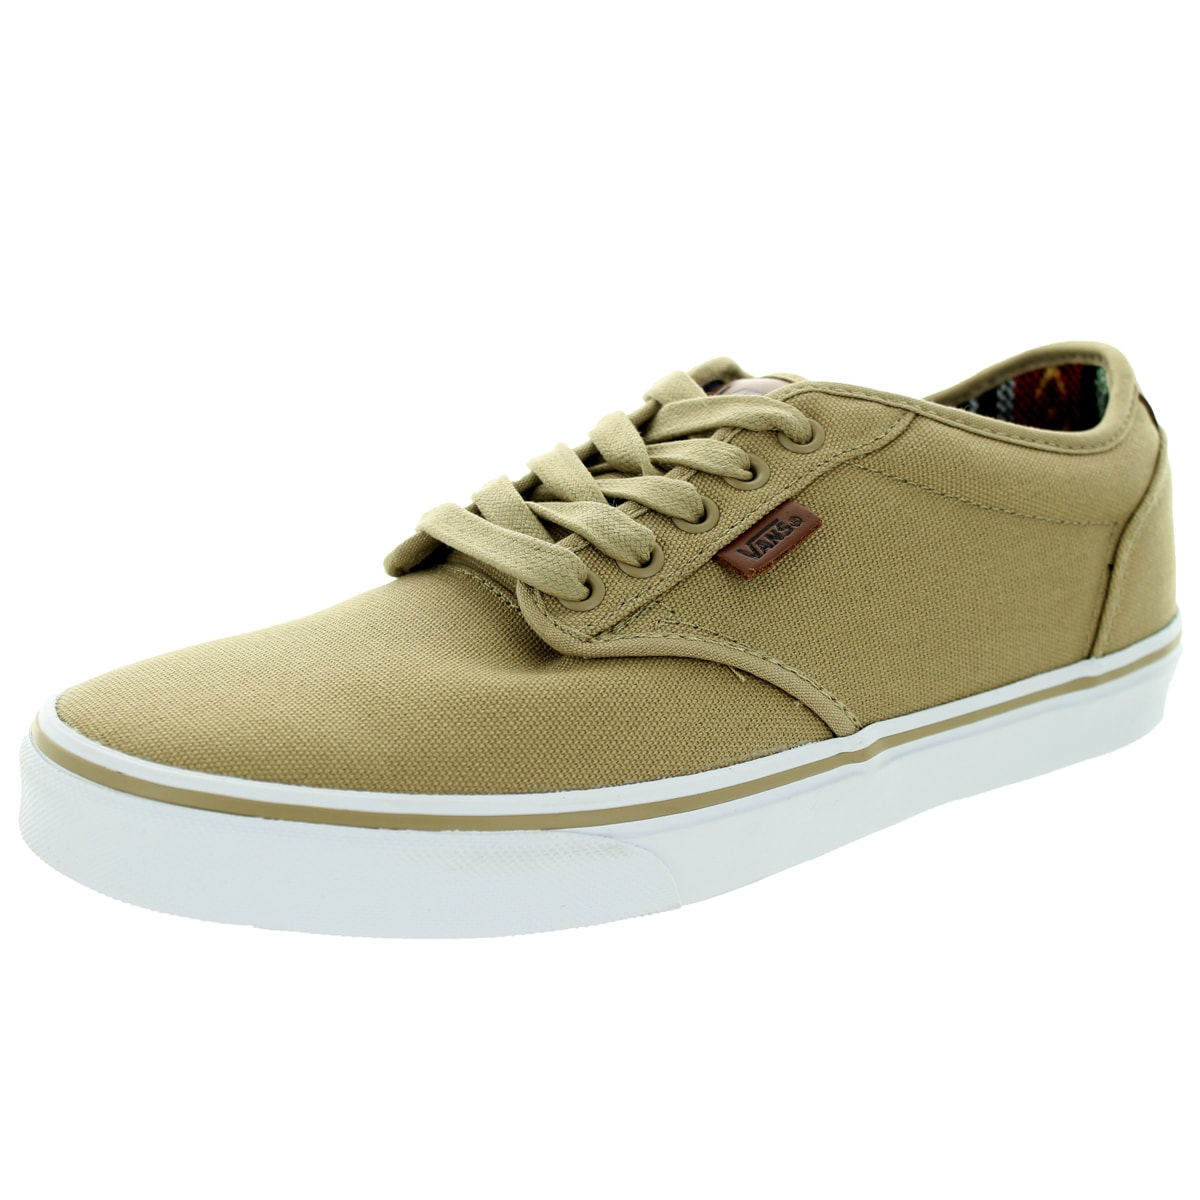 Atwood Beige Canvas Skate Shoes